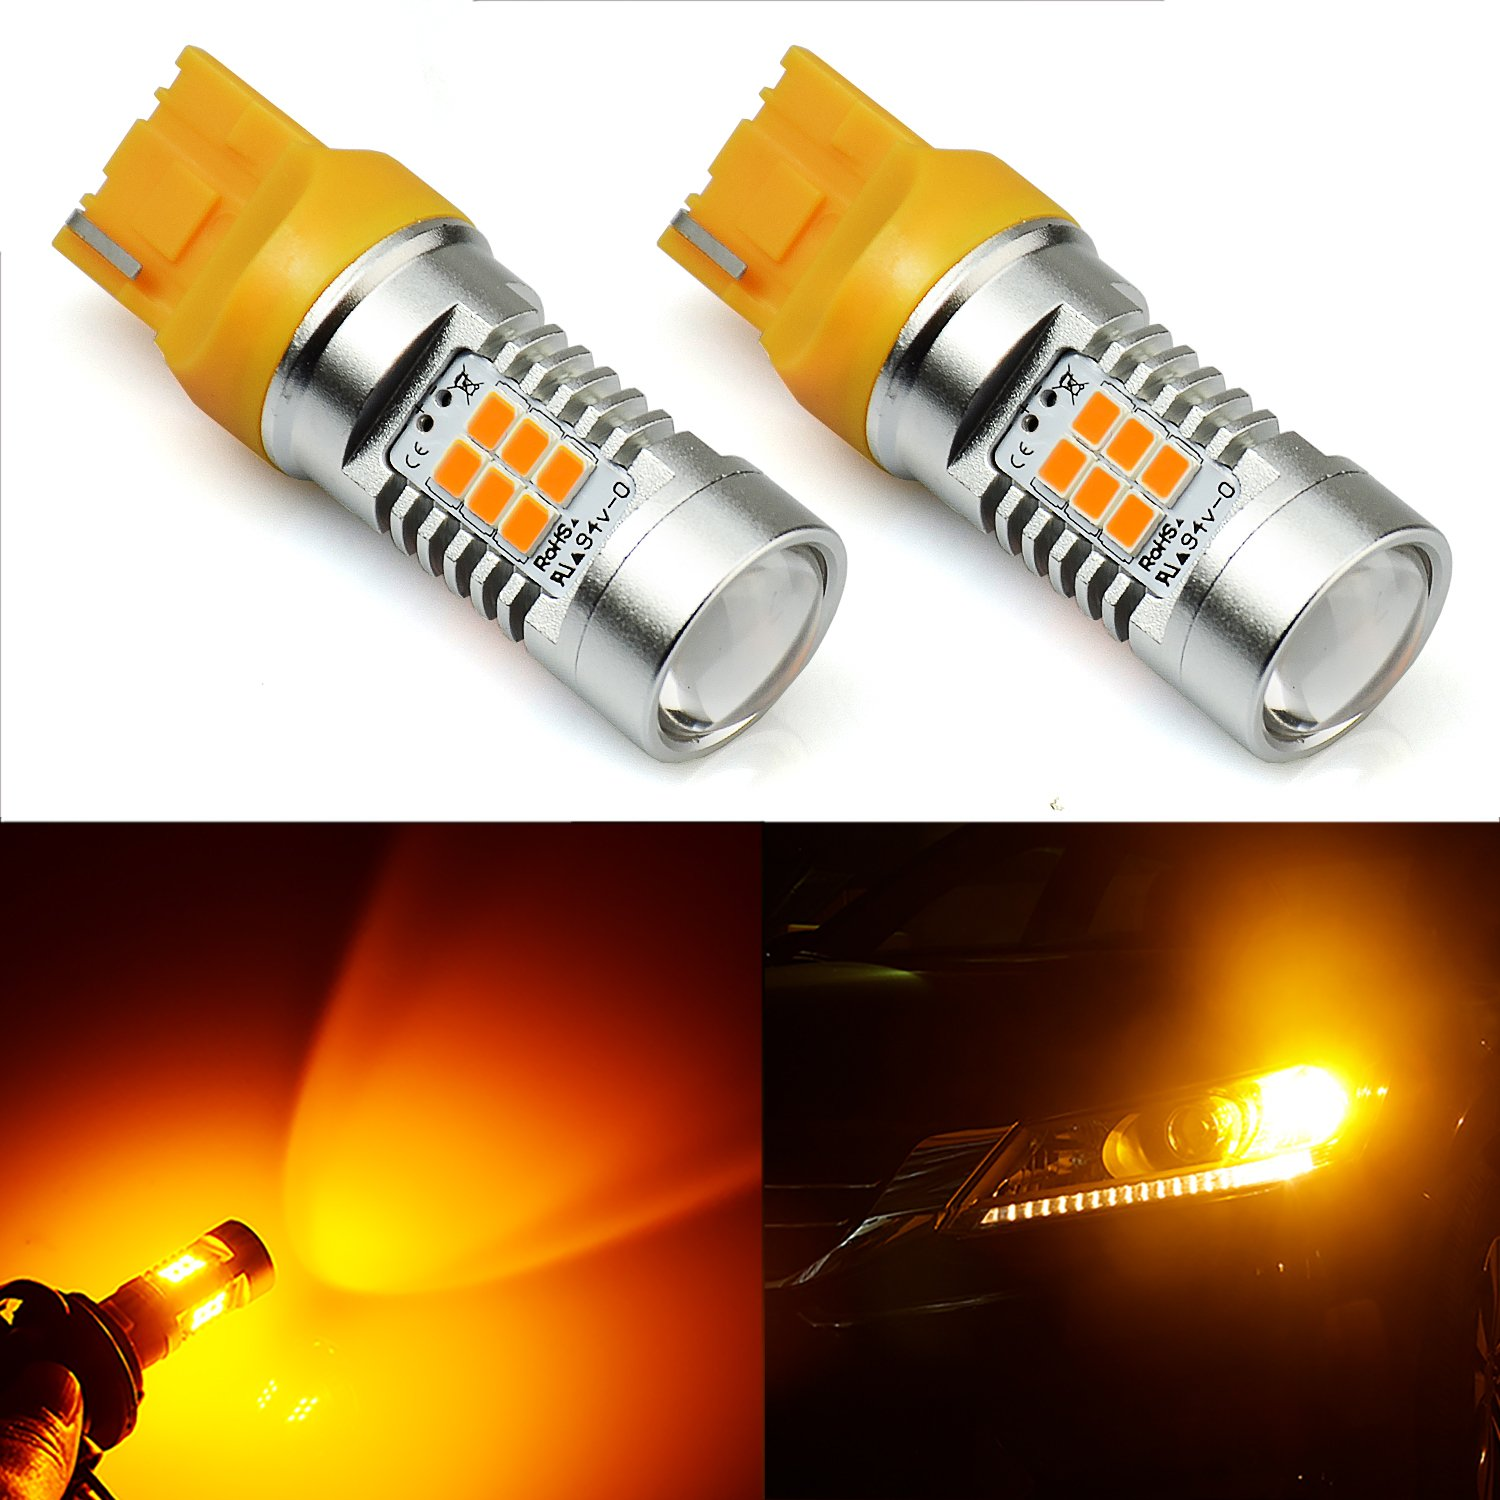 Jdm Astar 1260 Lumens Extremely Bright Px Chipsets 7440 1996 Honda Civic Firing Order 7441 T20 Led Bulbsamber Yellowbrightest Turn Signal Bulb On The Market Automotive